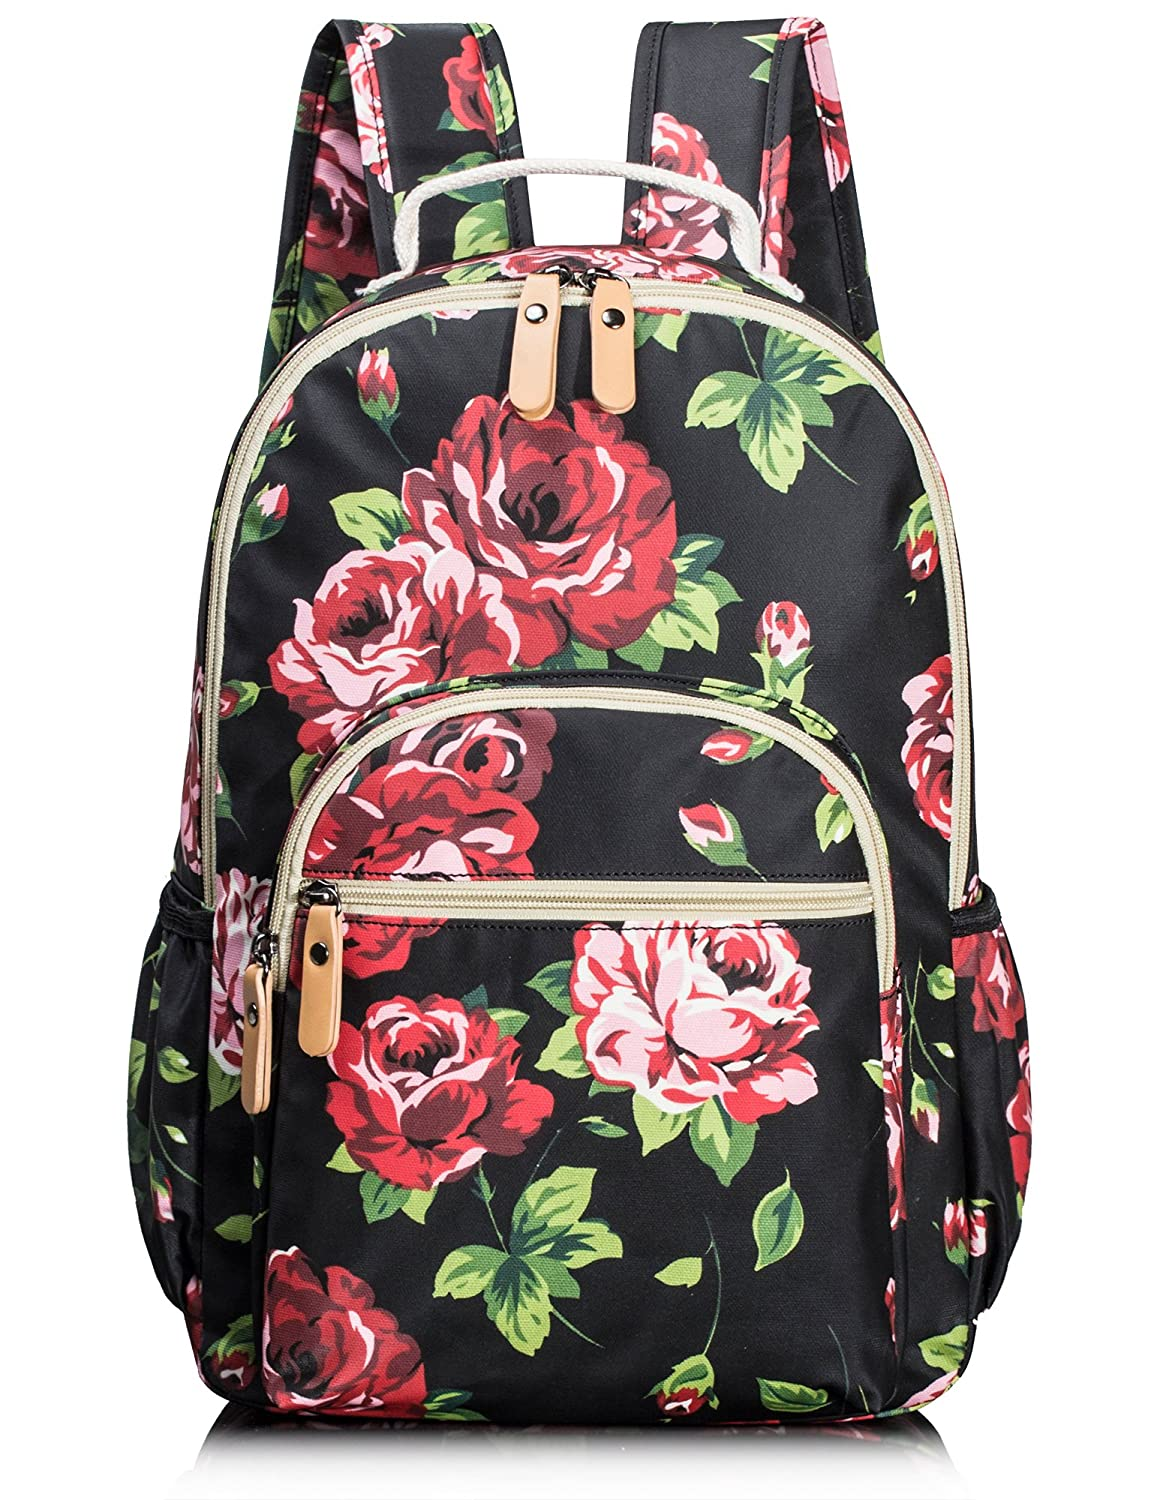 School Bookbags for Girls, Cute Floral Water-Resistant Laptop Backpack College Bags Light Daypack by Leaper (Floral Black) Fifth Season BP4677